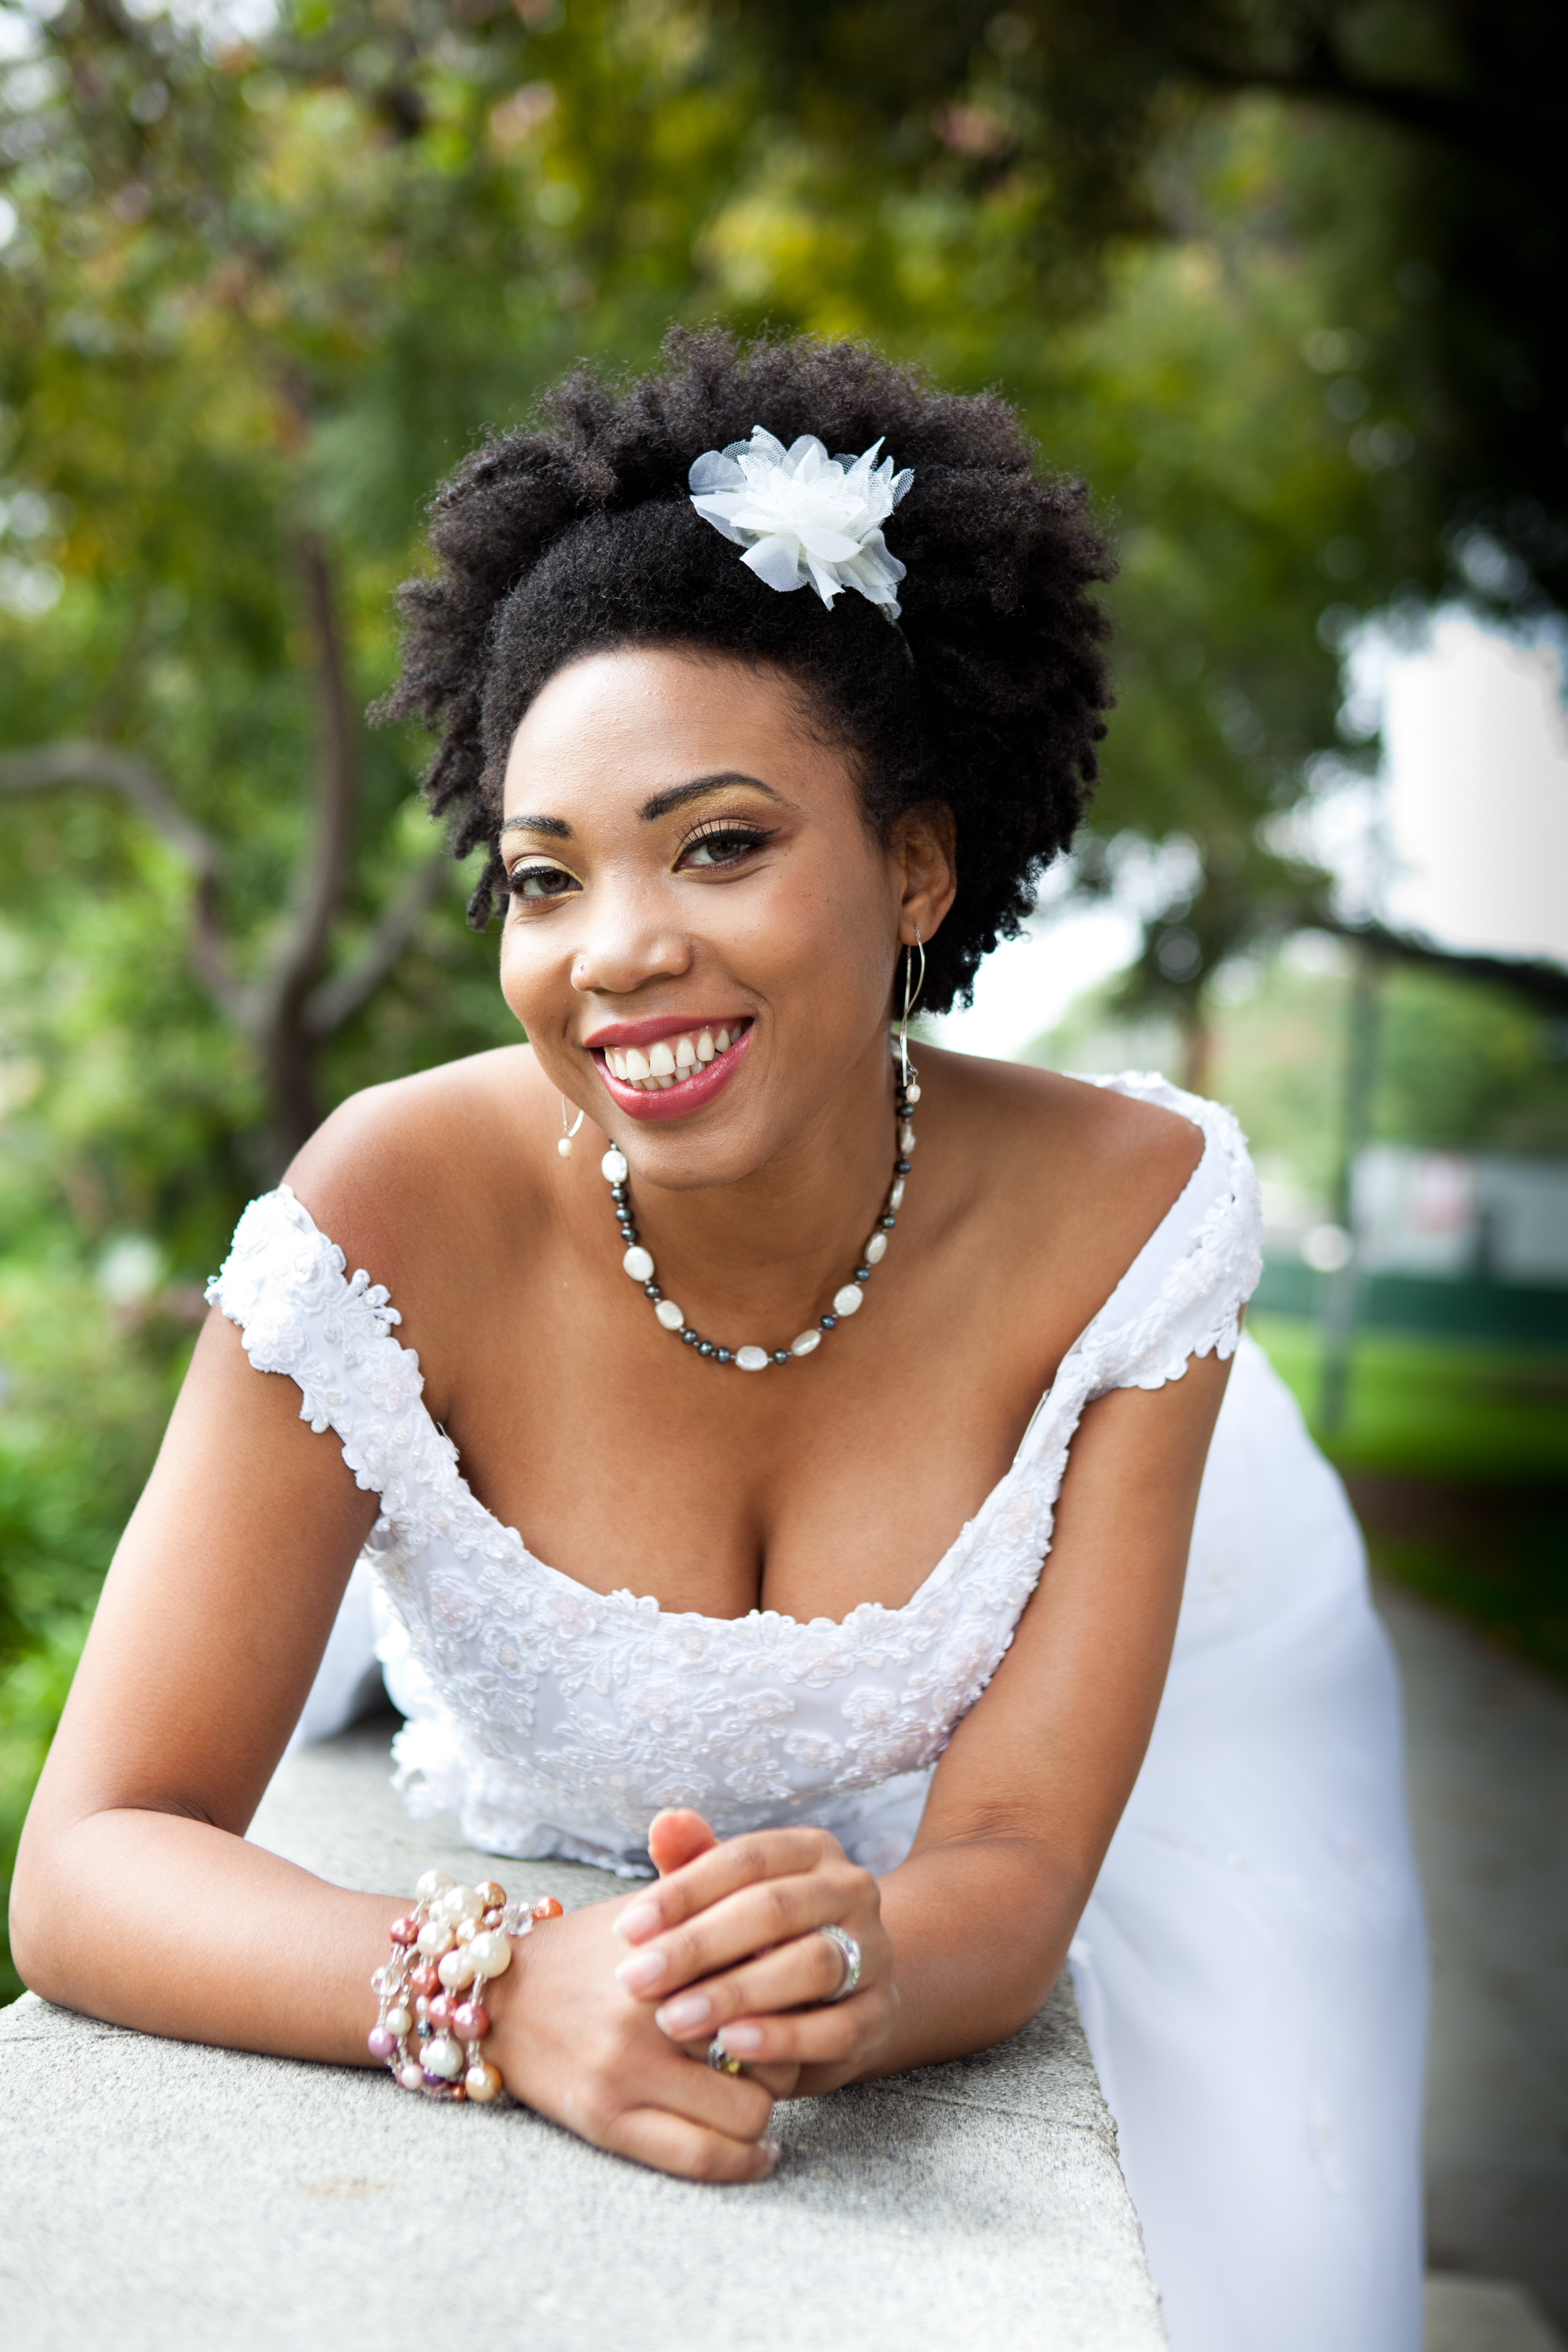 10 Best African Wedding Hairstyles For 2020 All Things Hair